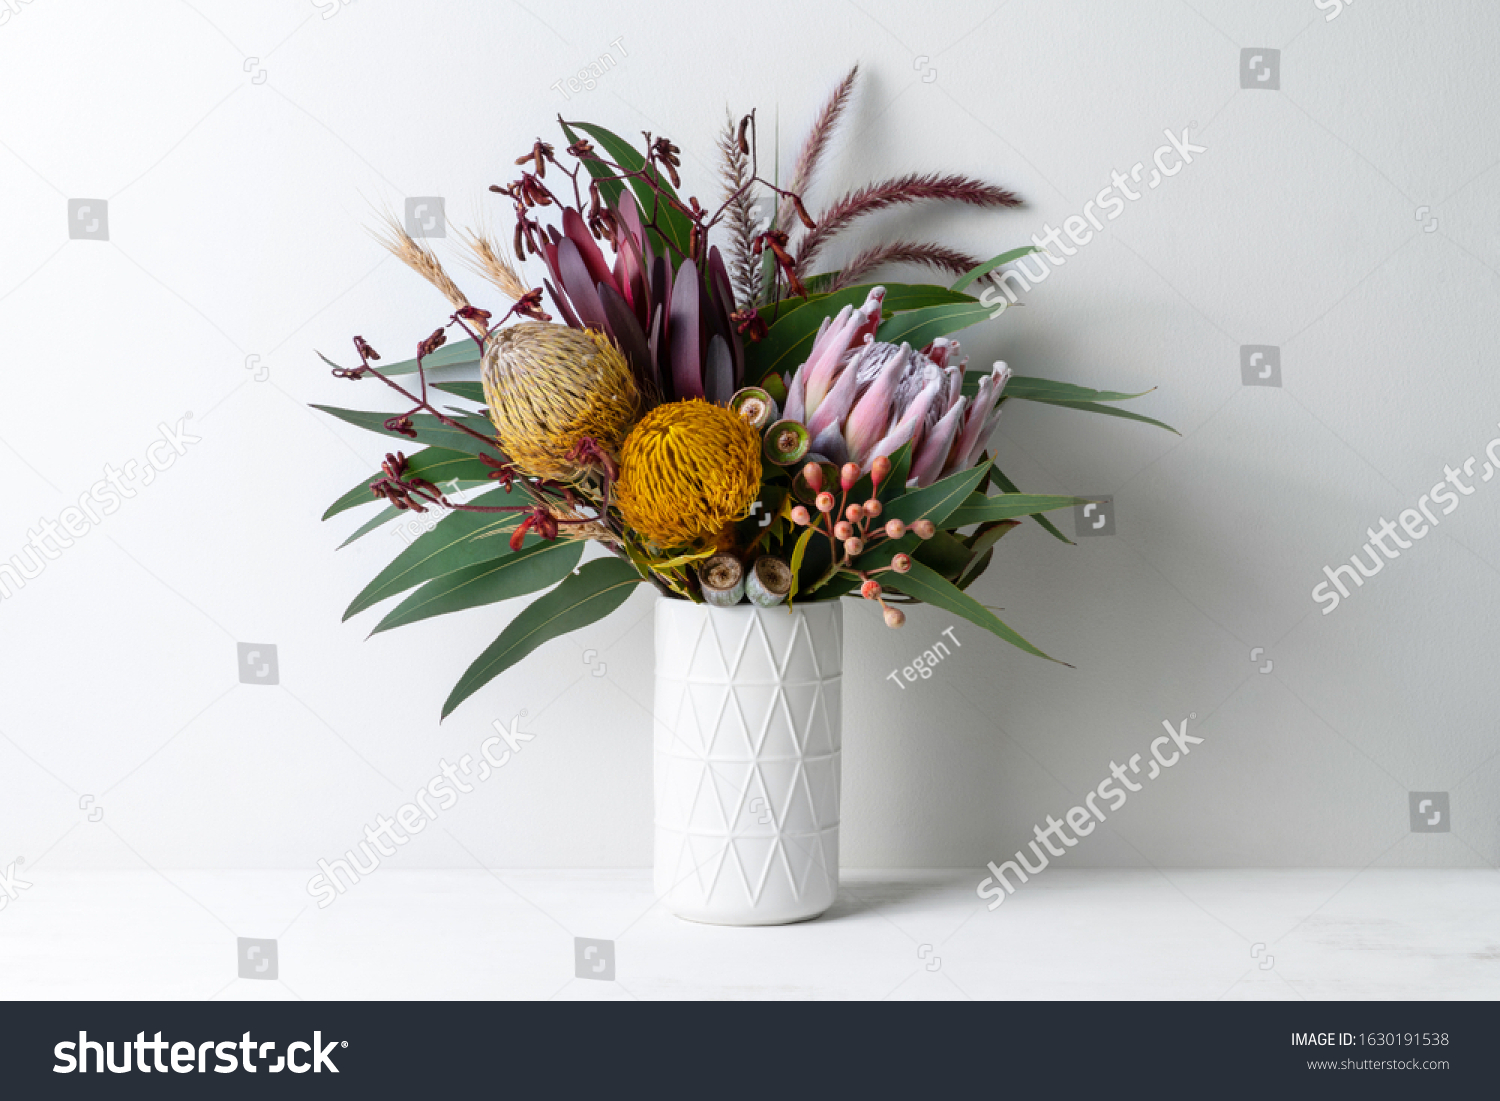 Beautiful floral arrangement of mostly Australian native flowers, including protea, banksia, kangaroo paw, eucalyptus leaves and gum nuts, in a white vase on a white table with a white background. #1630191538